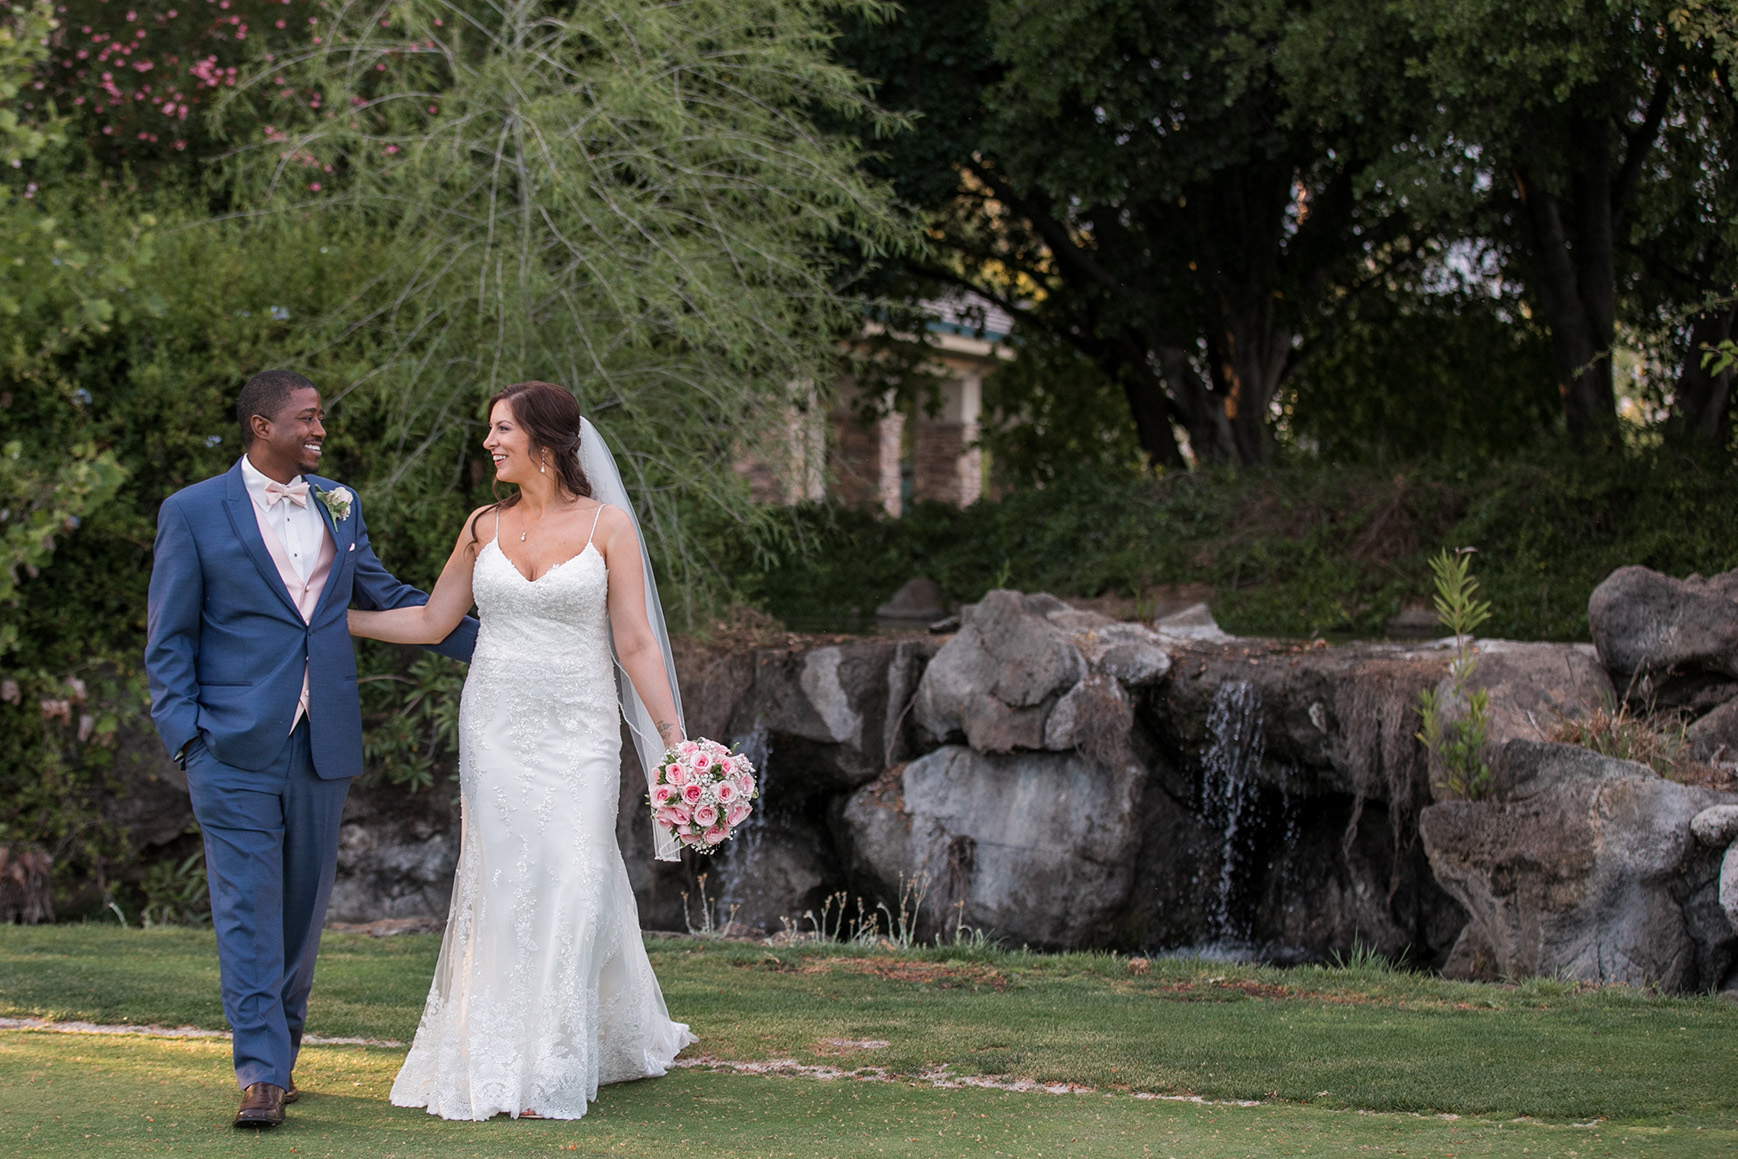 Happy Couple - Brentwood - Brentwood, California - Contra Costa County - Wedgewood Weddings